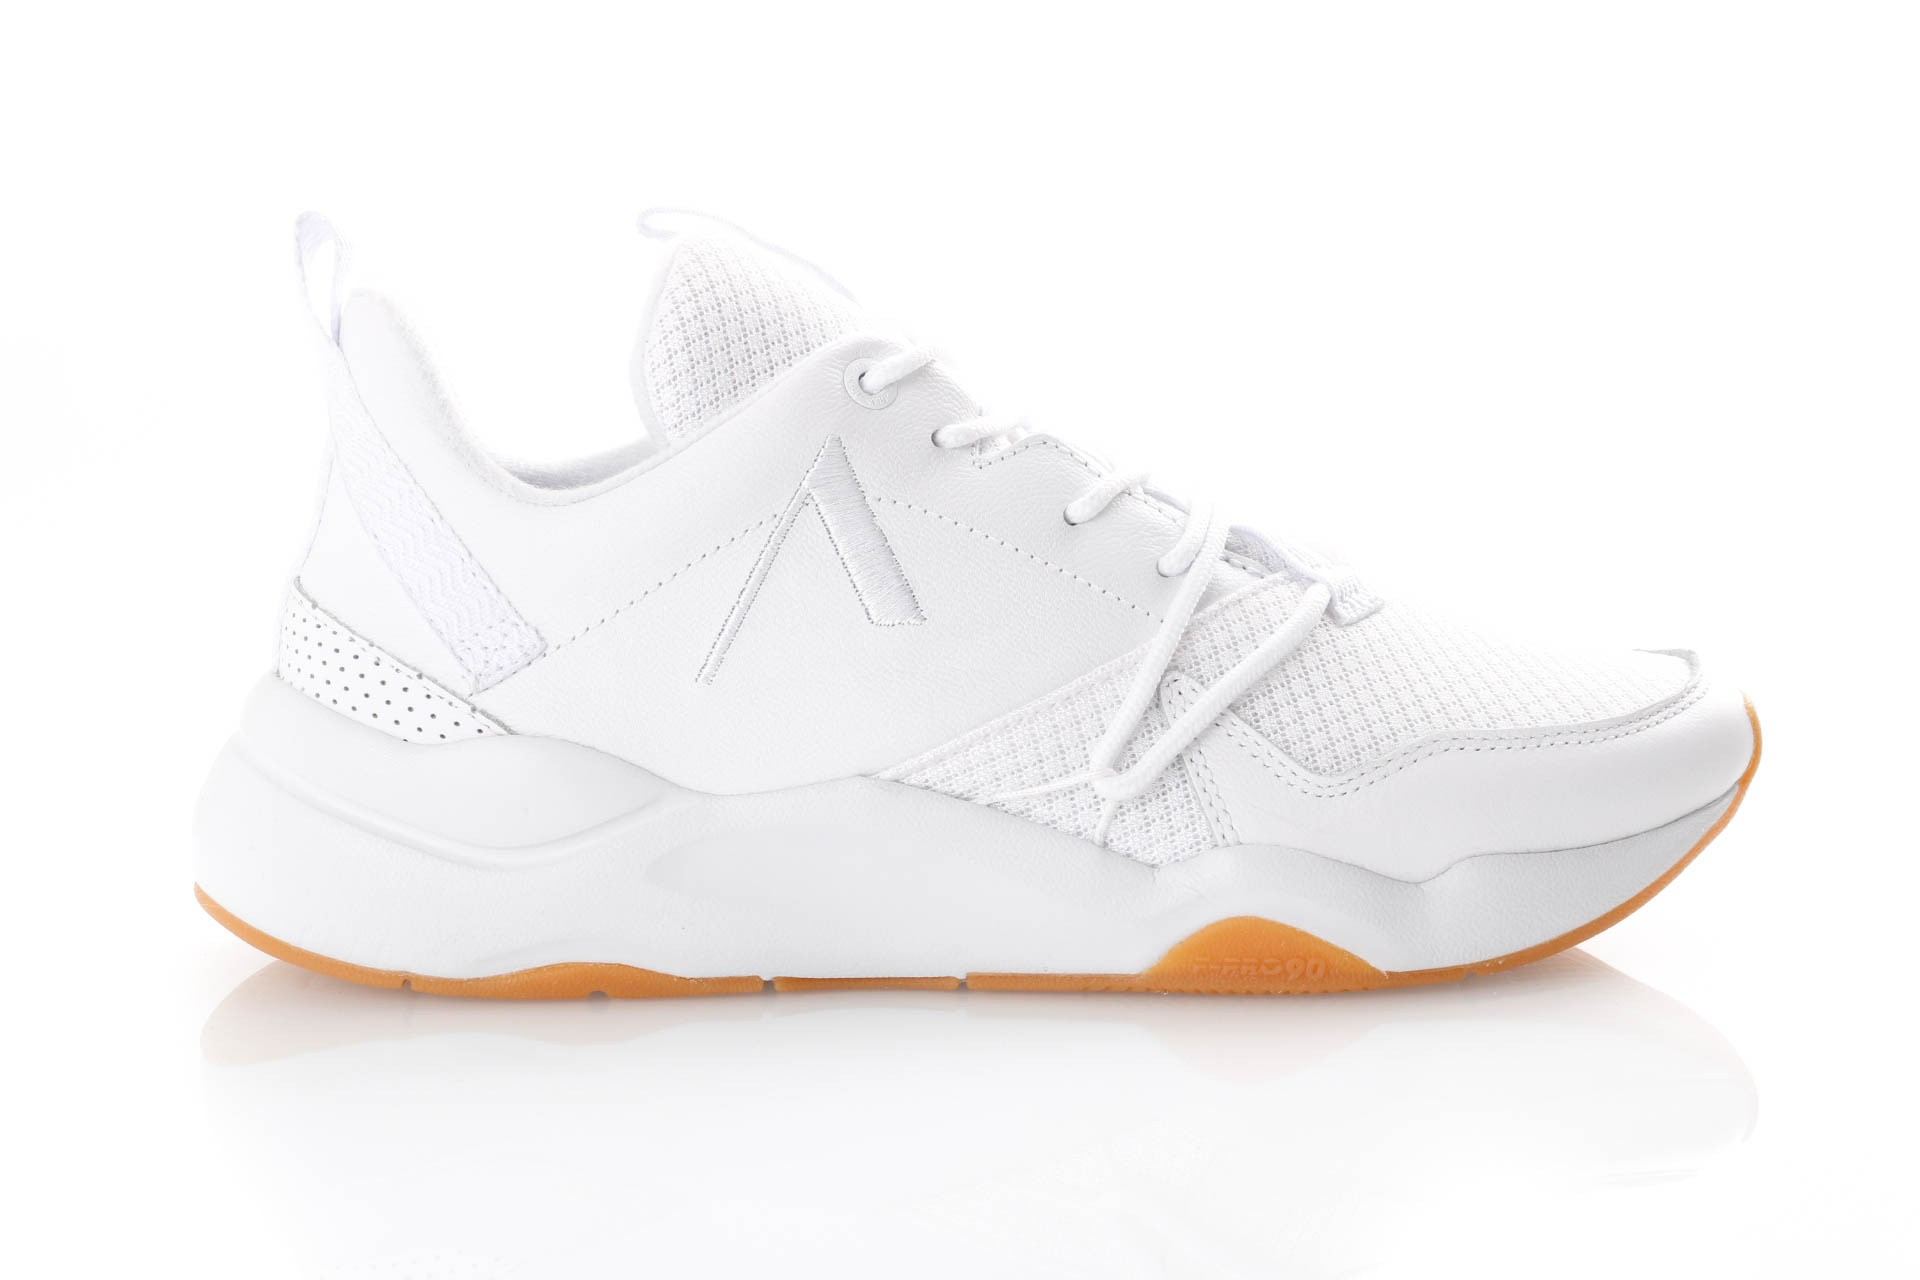 Foto van Arkk Asymtrix Mesh Fpro-90 -M Ml3008-0010-M Sneakers All White Light Gum